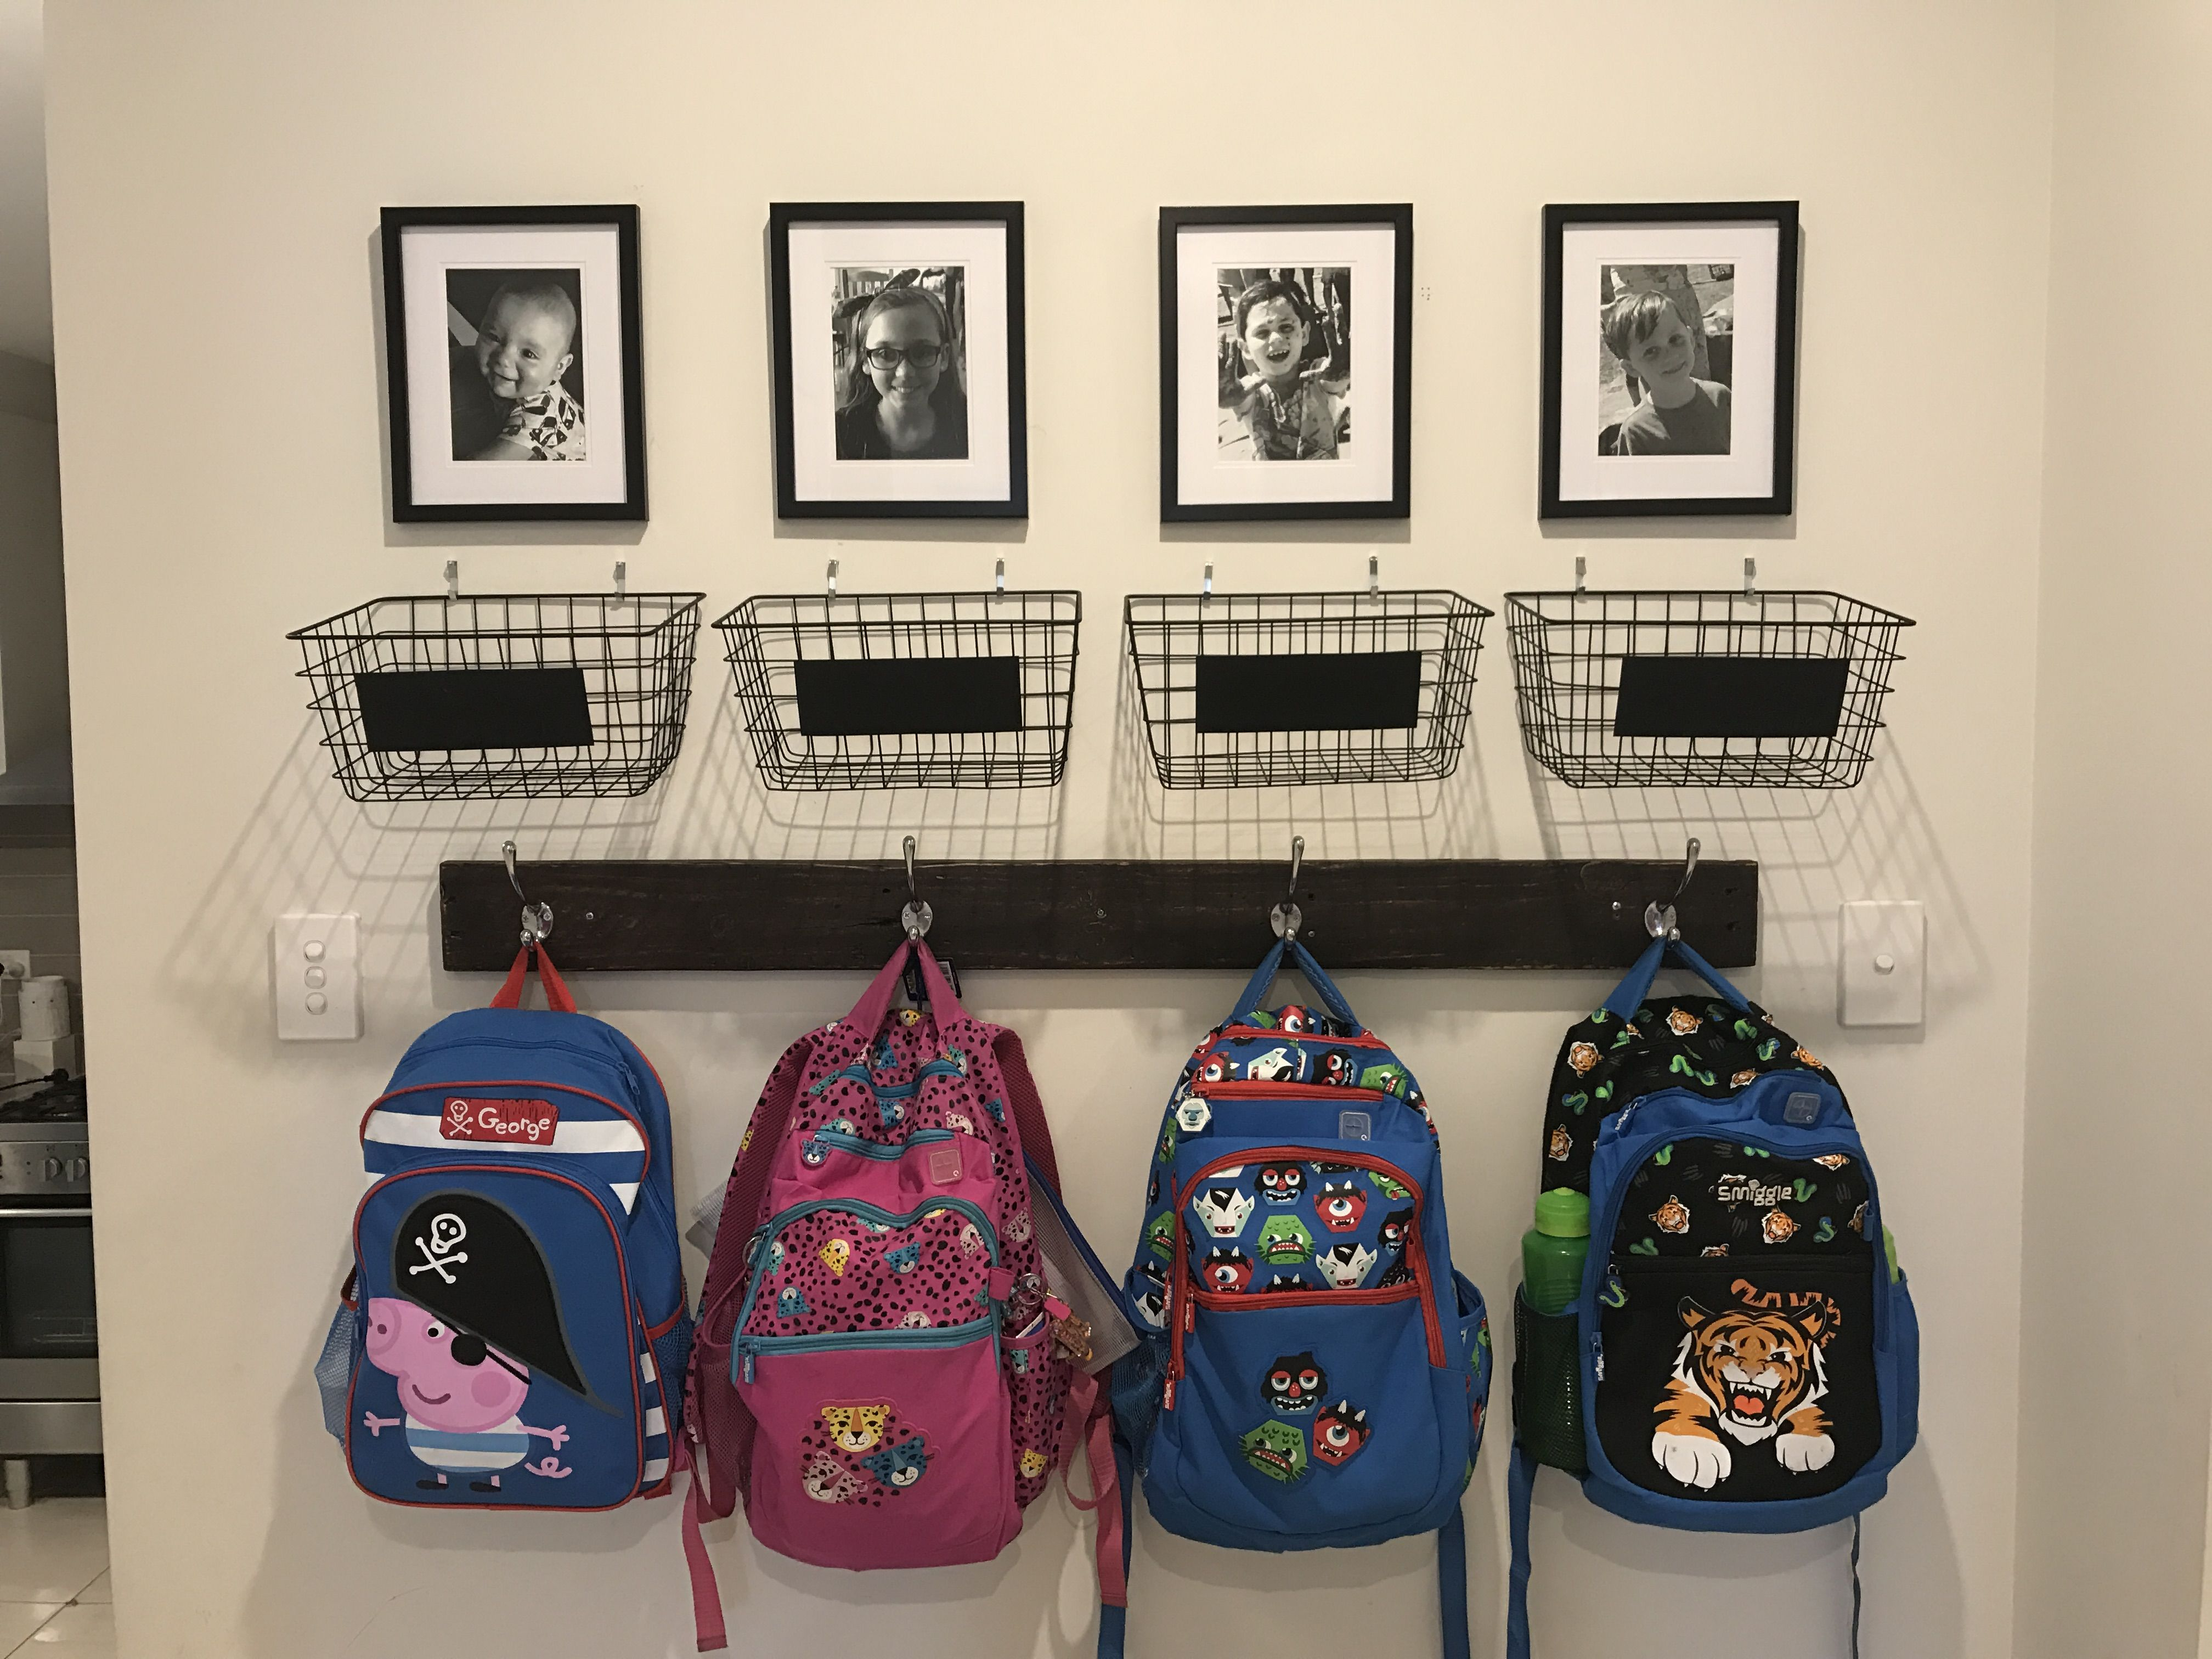 School Bag Storage Baskets From Kmart For School Notes And A Photo Above Each Hook Total Cost 50 Opbevaring Ideer Opbevaring Bryggers Ideer